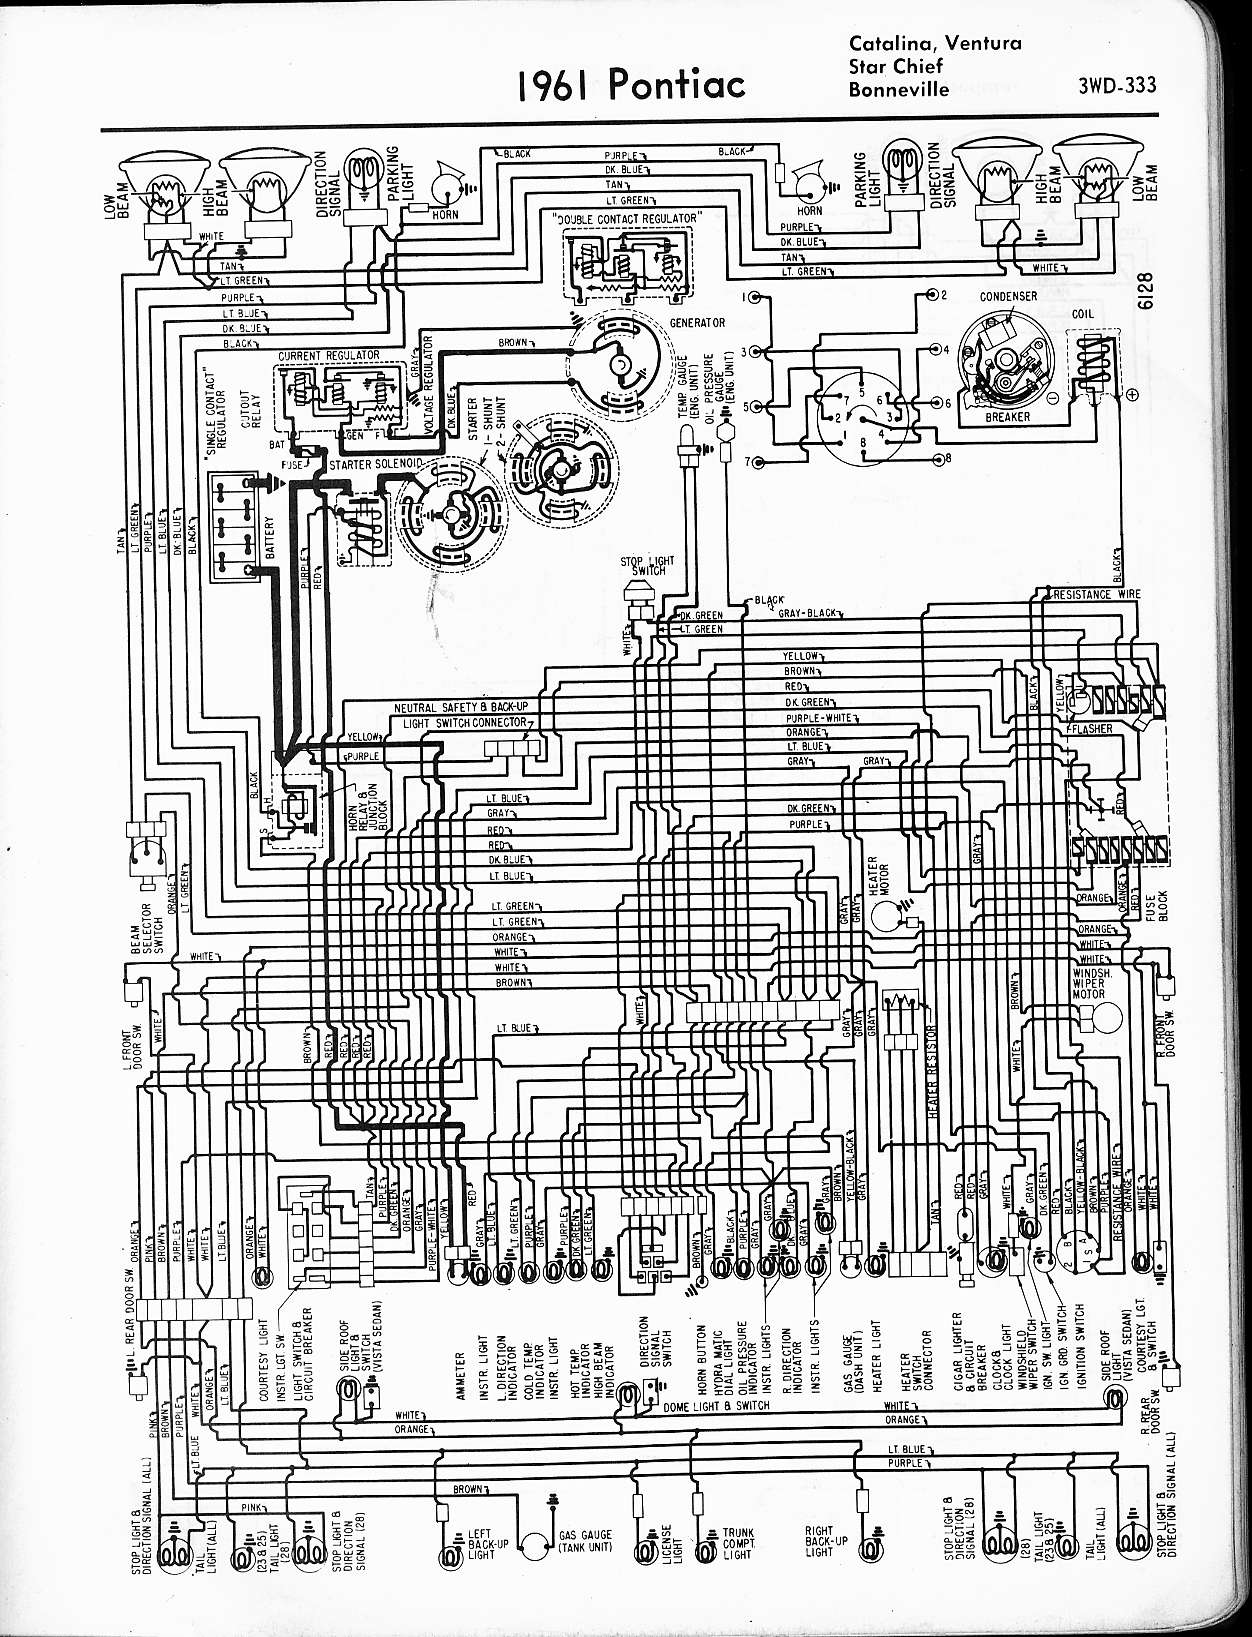 wallace racing wiring diagrams pontiac vacuum pump diagram 1961 catalina,  star chief, ventura,